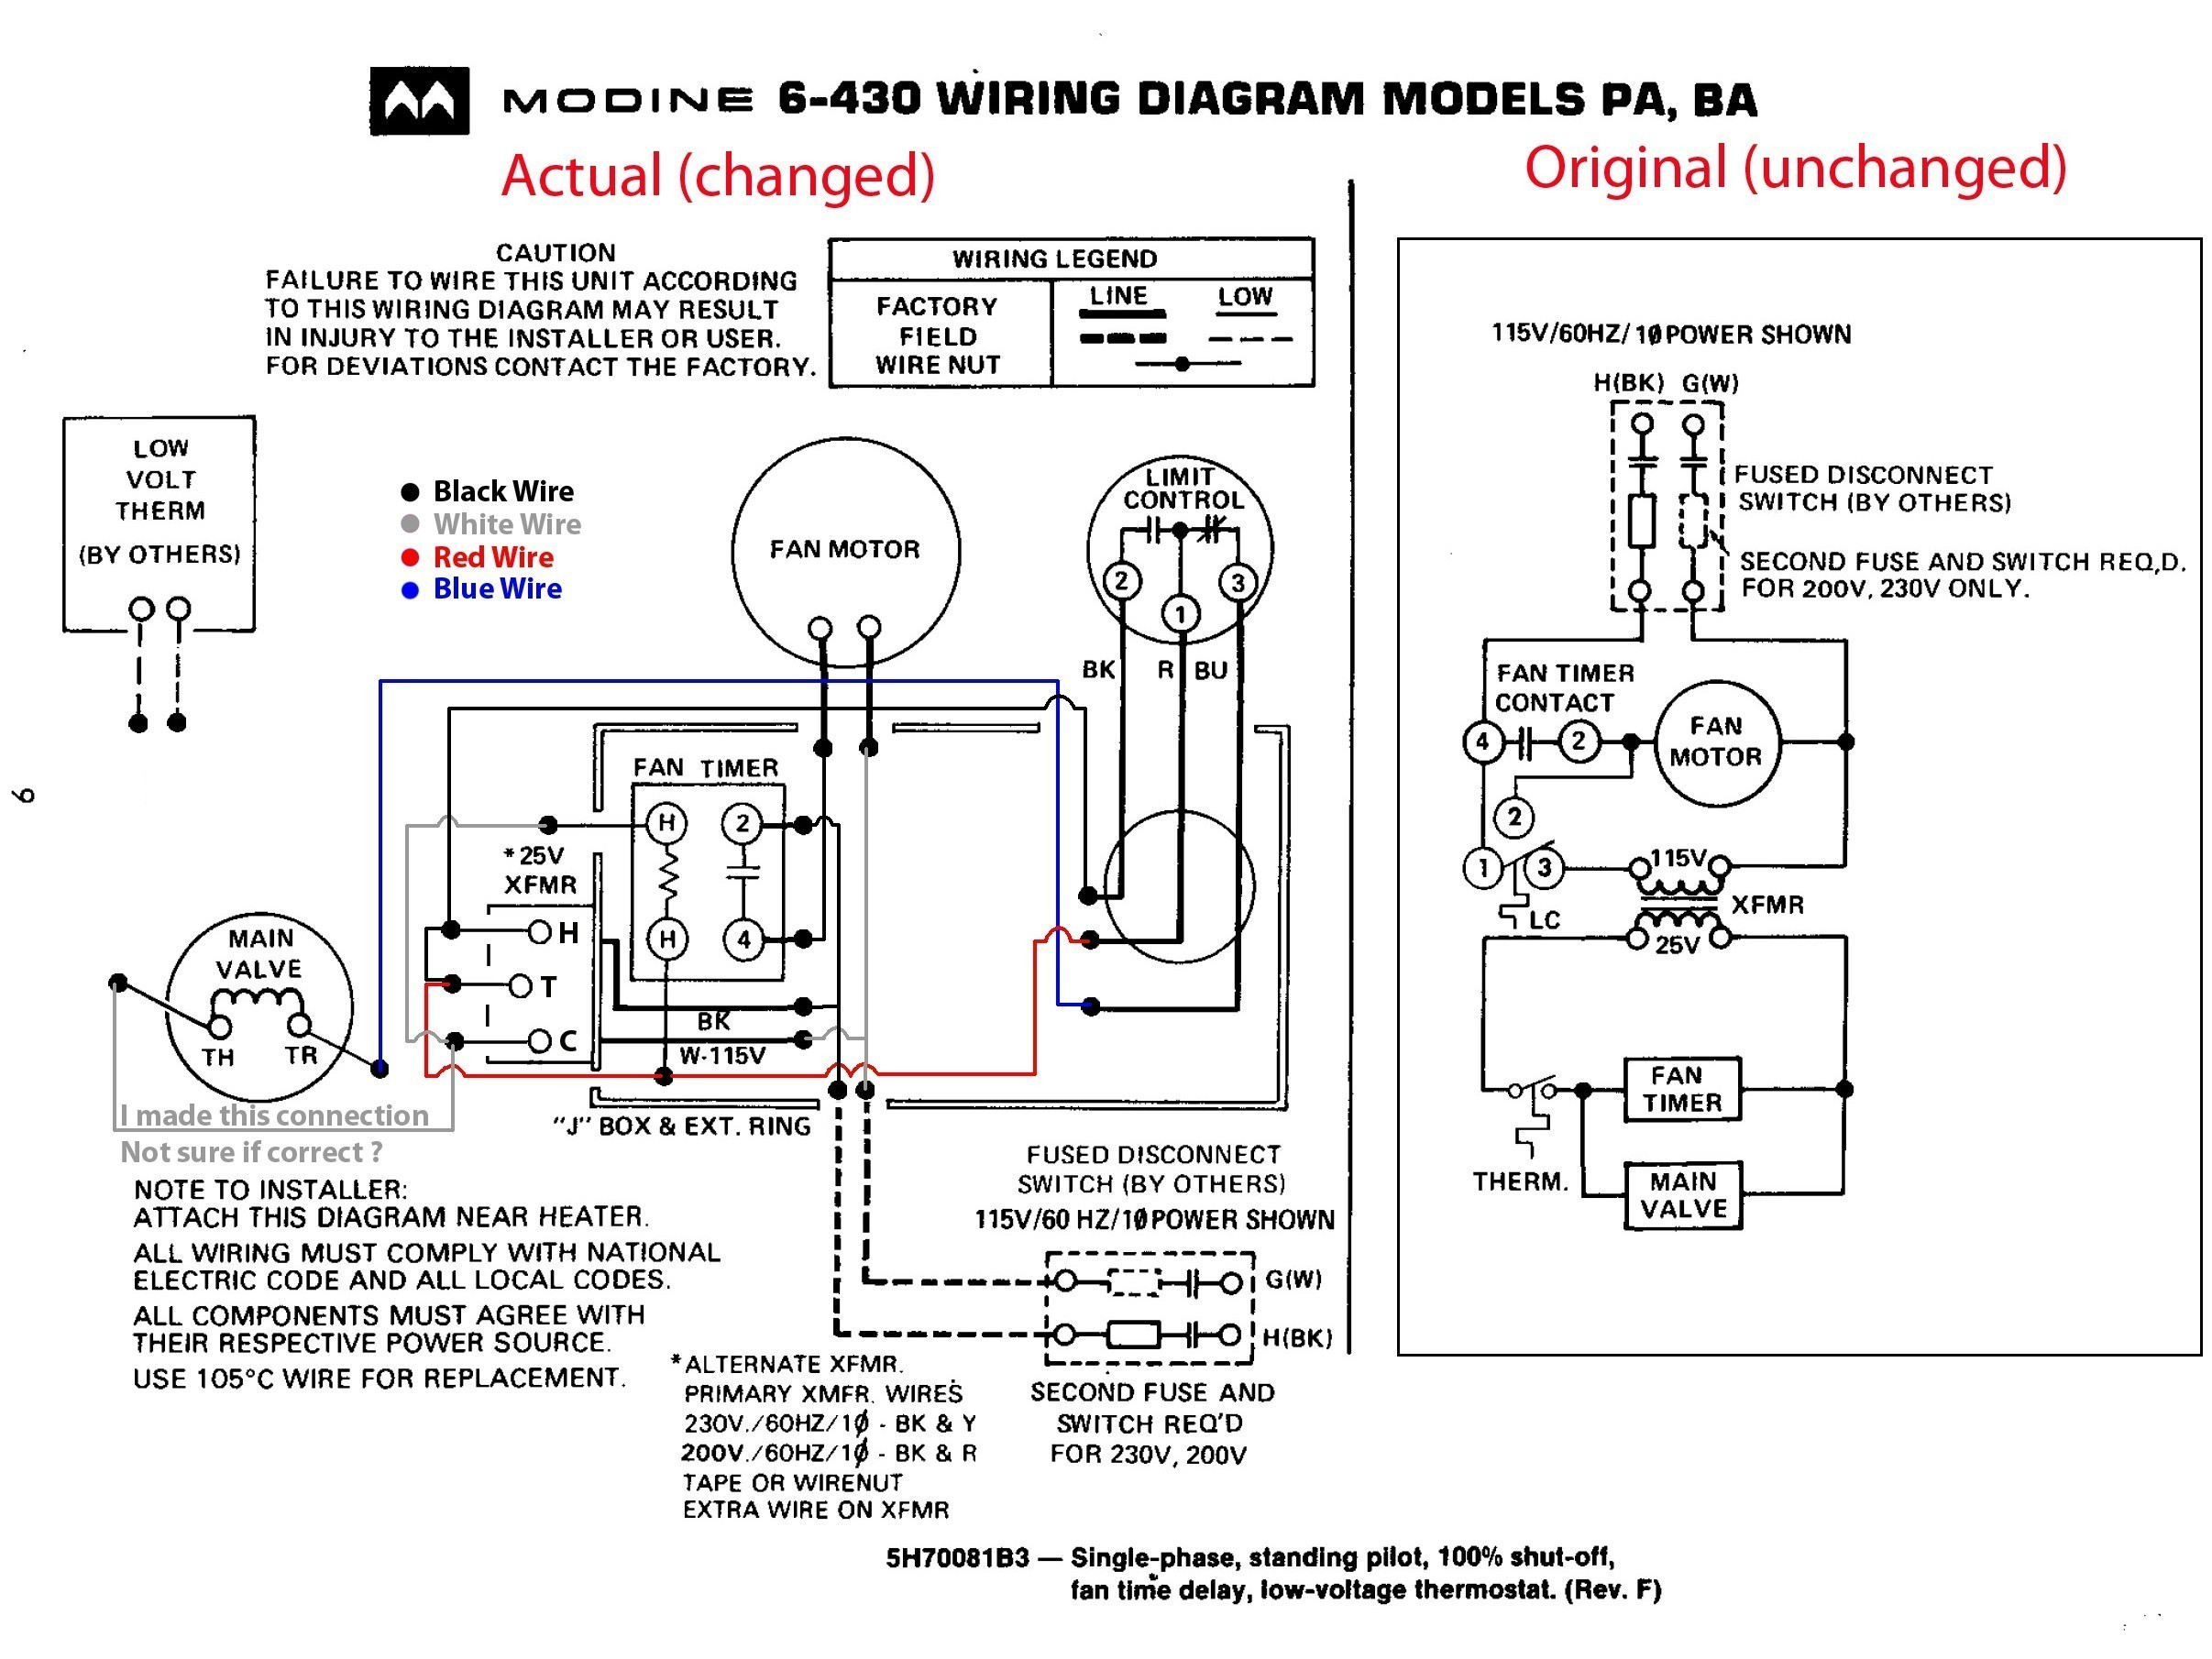 Fan Motor Wiring Diagram from mainetreasurechest.com